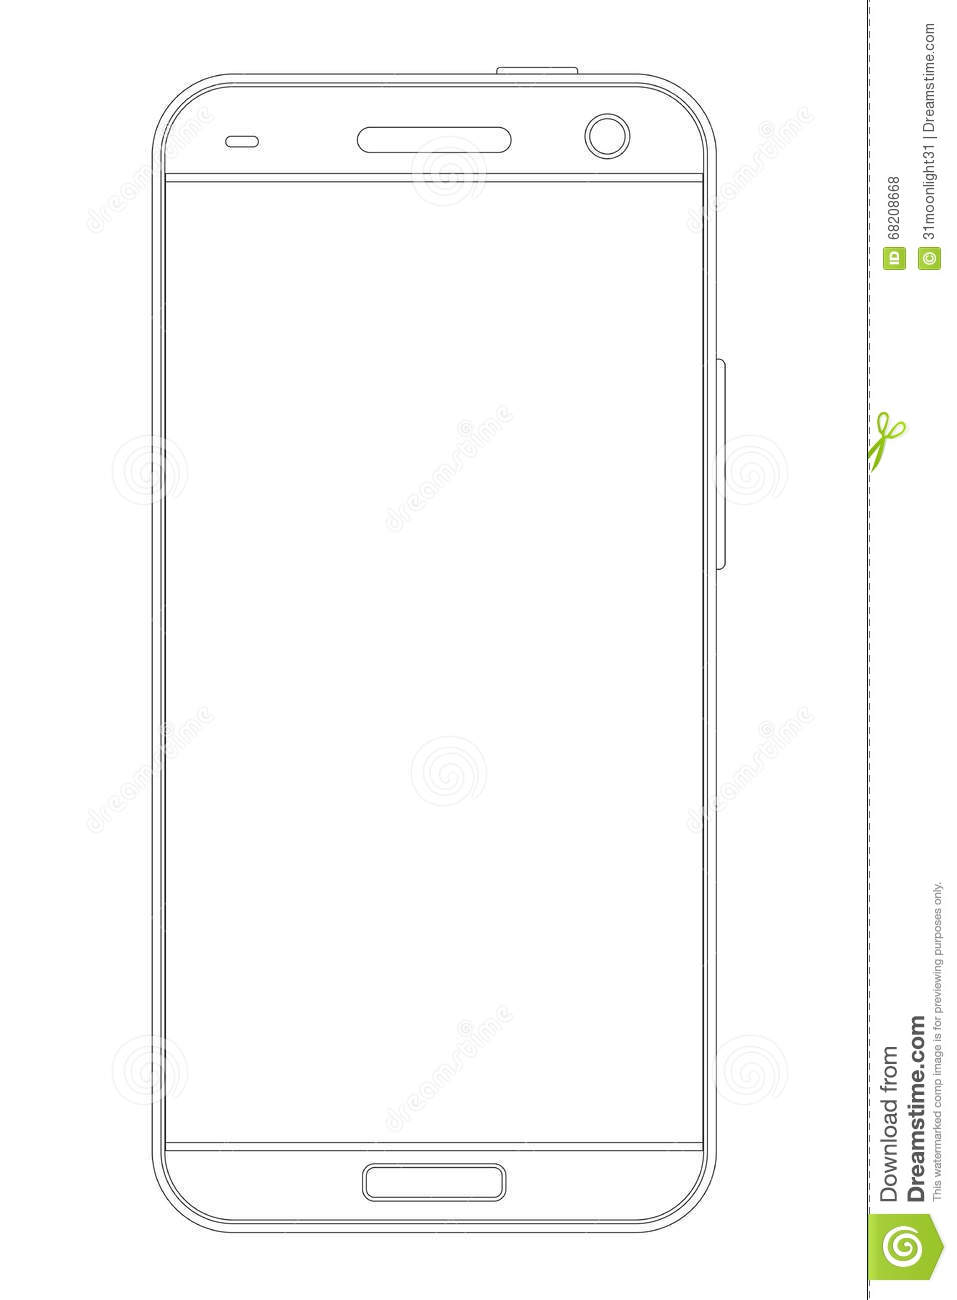 Realistic detailed outline drawing smartphone, black on white.